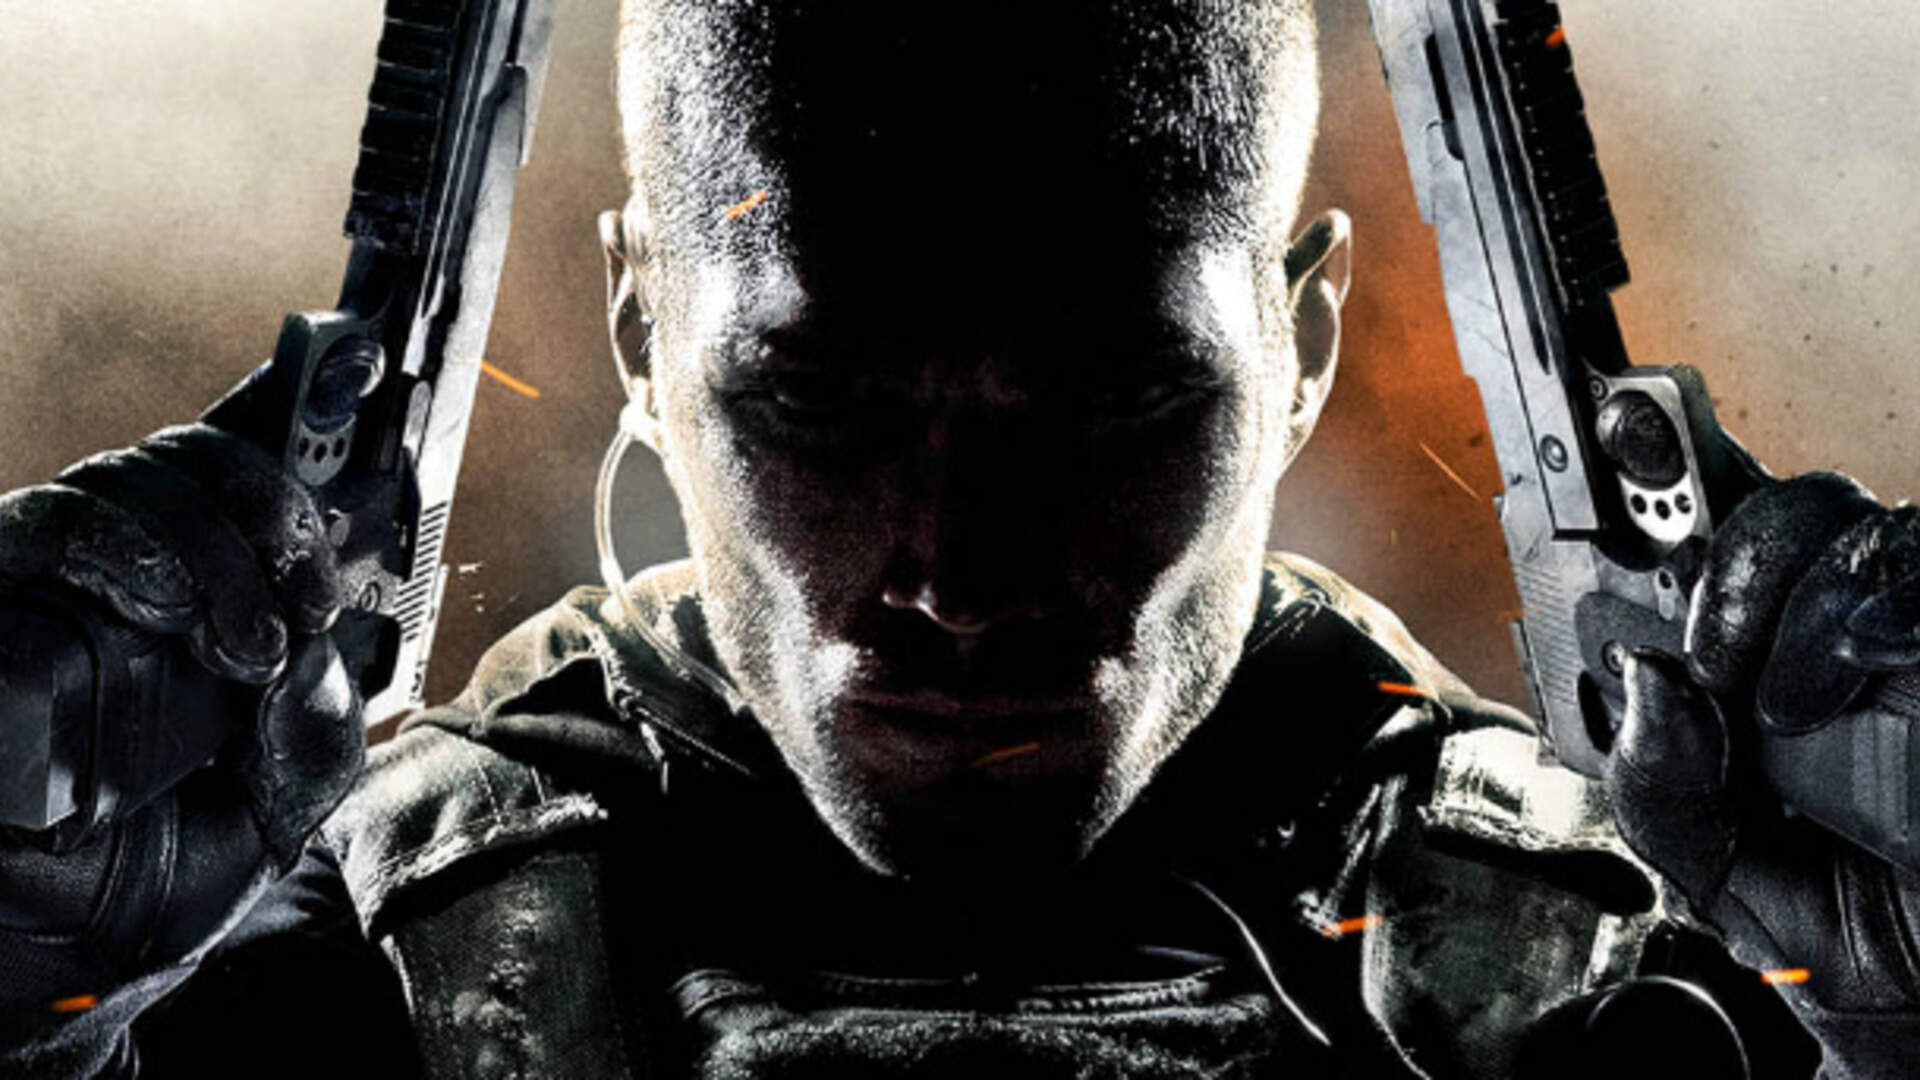 Treyarch Confirmed for Call of Duty 2018 as Black Ops 4 Rumors Swirl